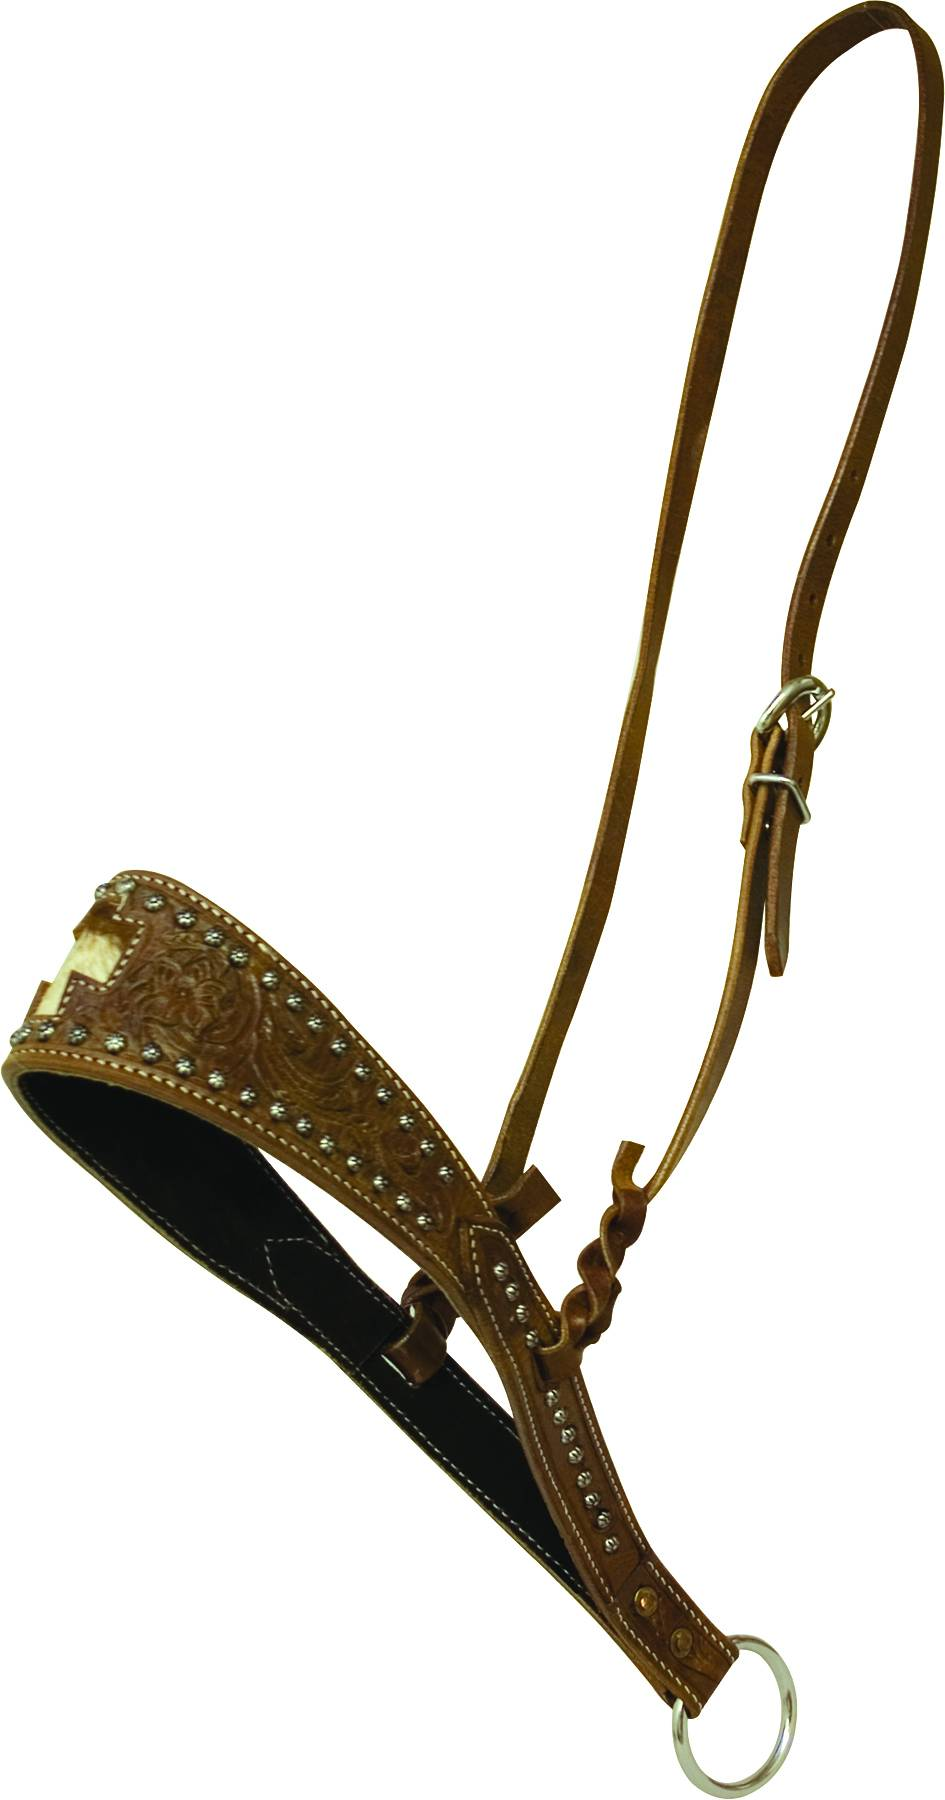 Cowboy Pro Wide Noseband with Hair On